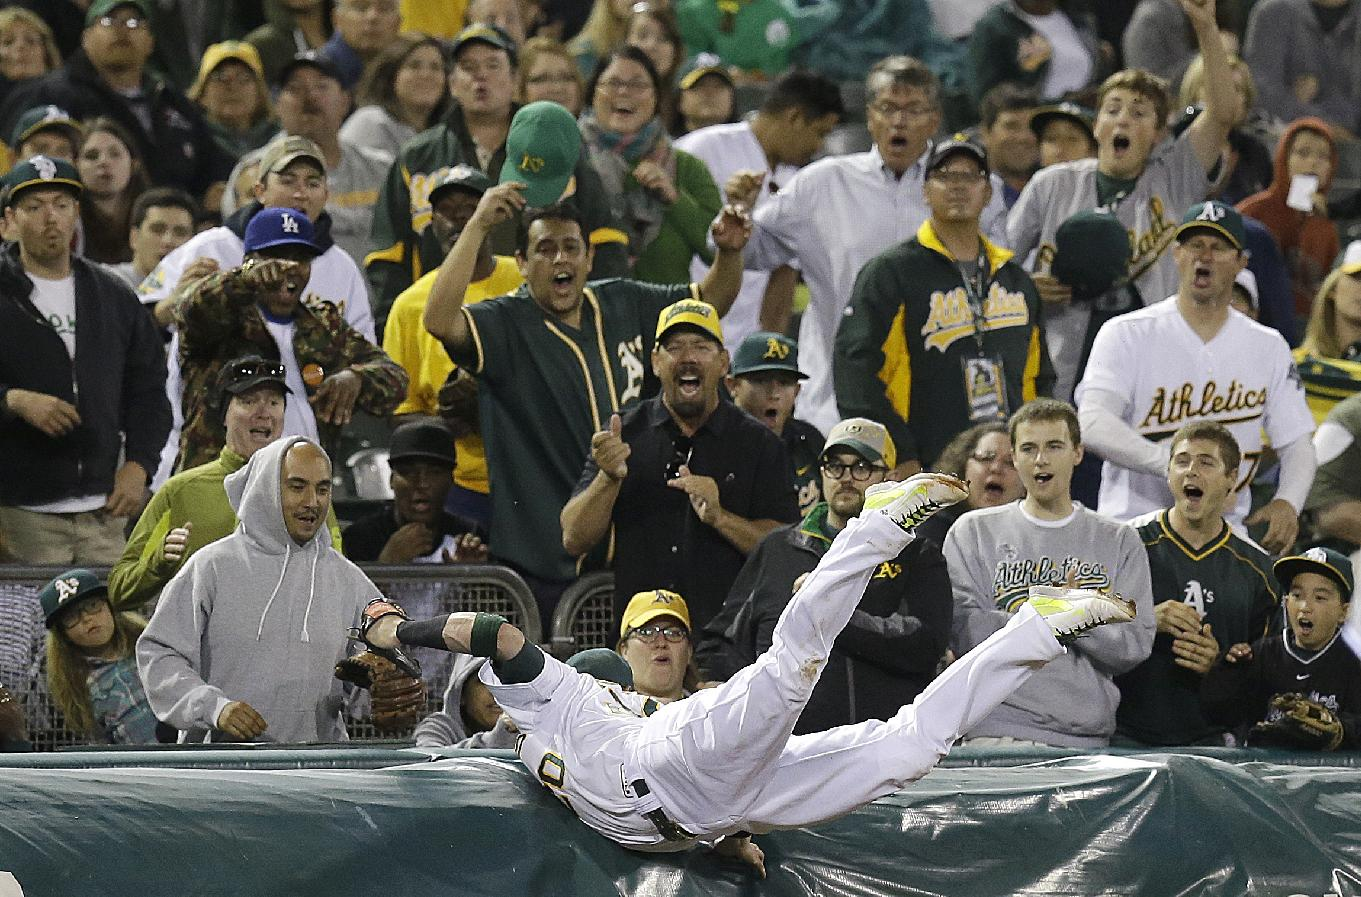 Josh Donaldson torpedoes into tarp, makes great catch — again (…